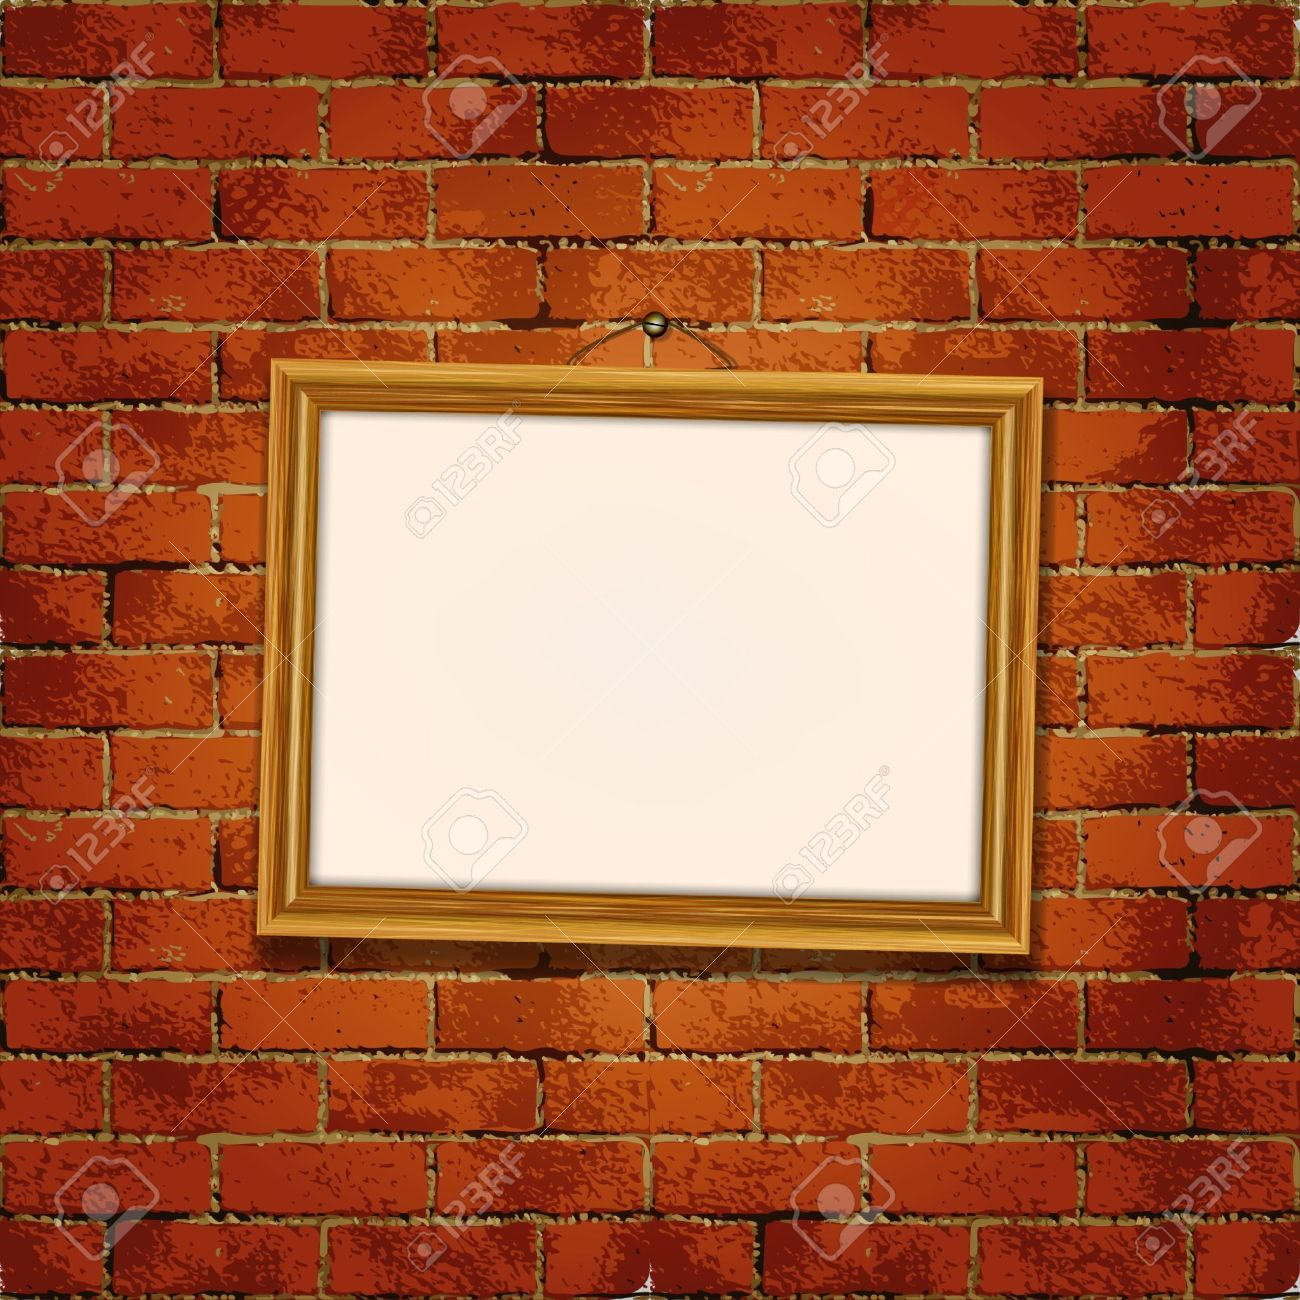 Old Wooden Frame On The Grunge Brick Wall Royalty Free Cliparts ...